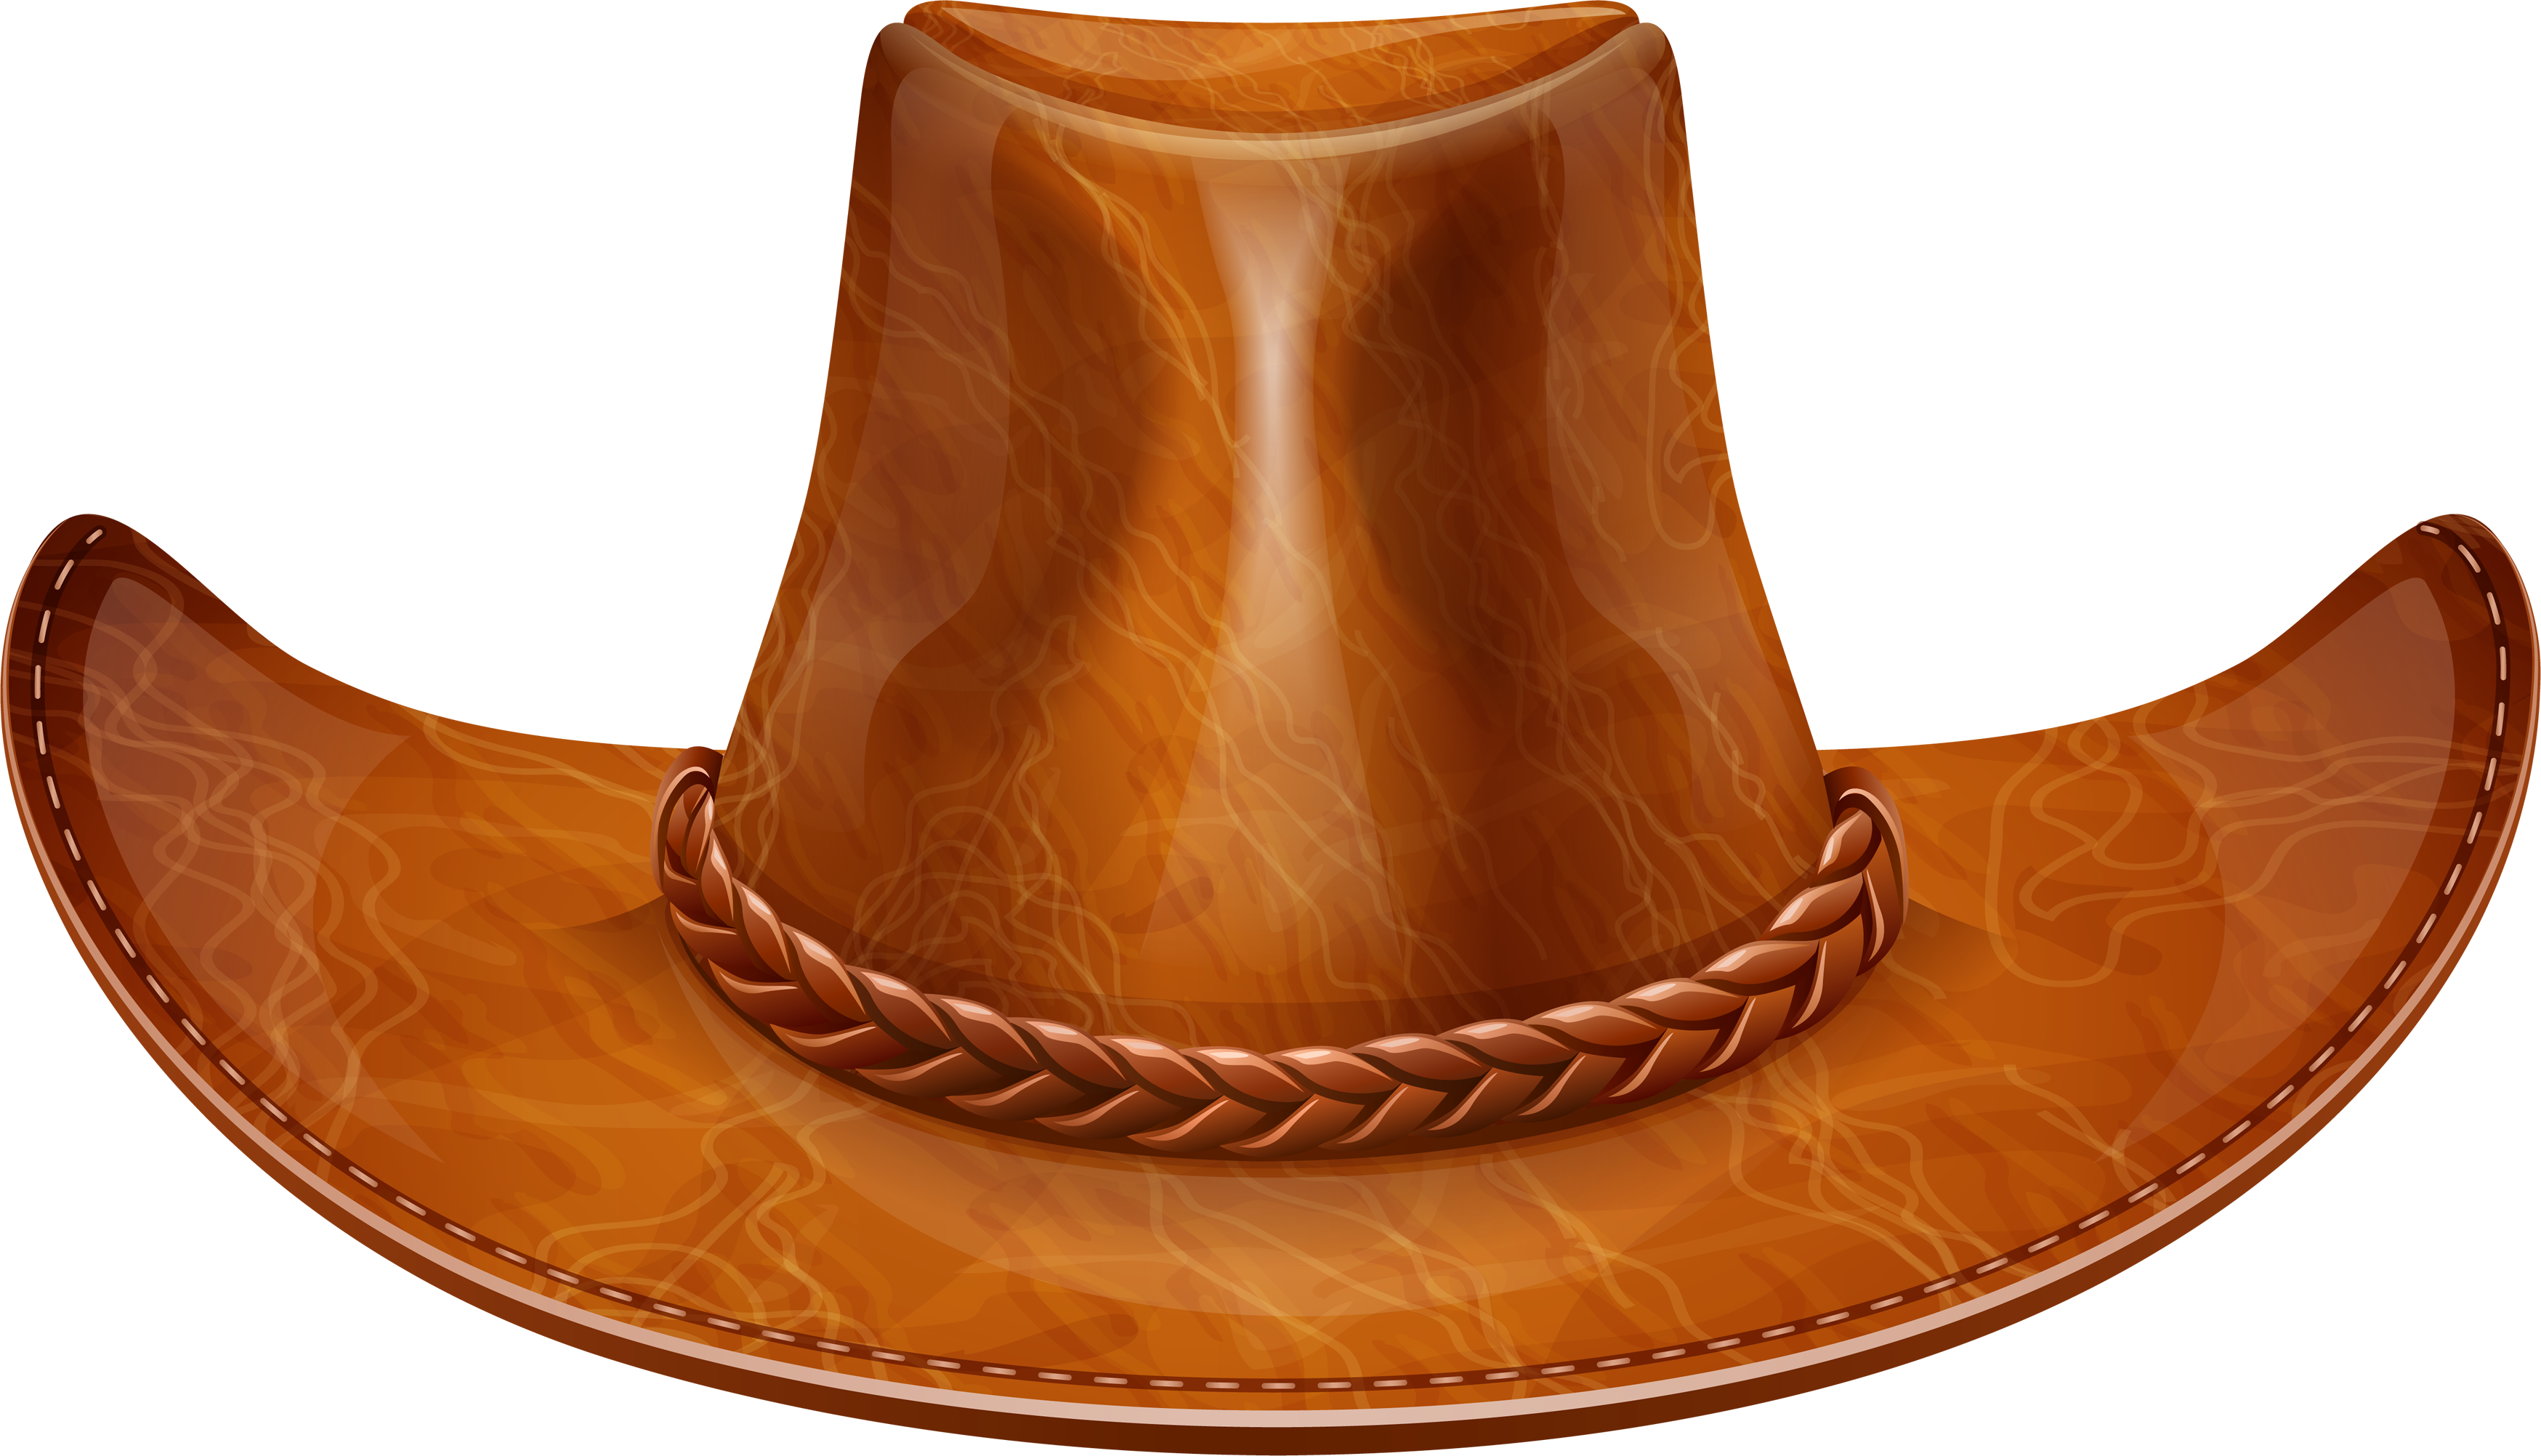 Hat png images free. Hats clipart wild west